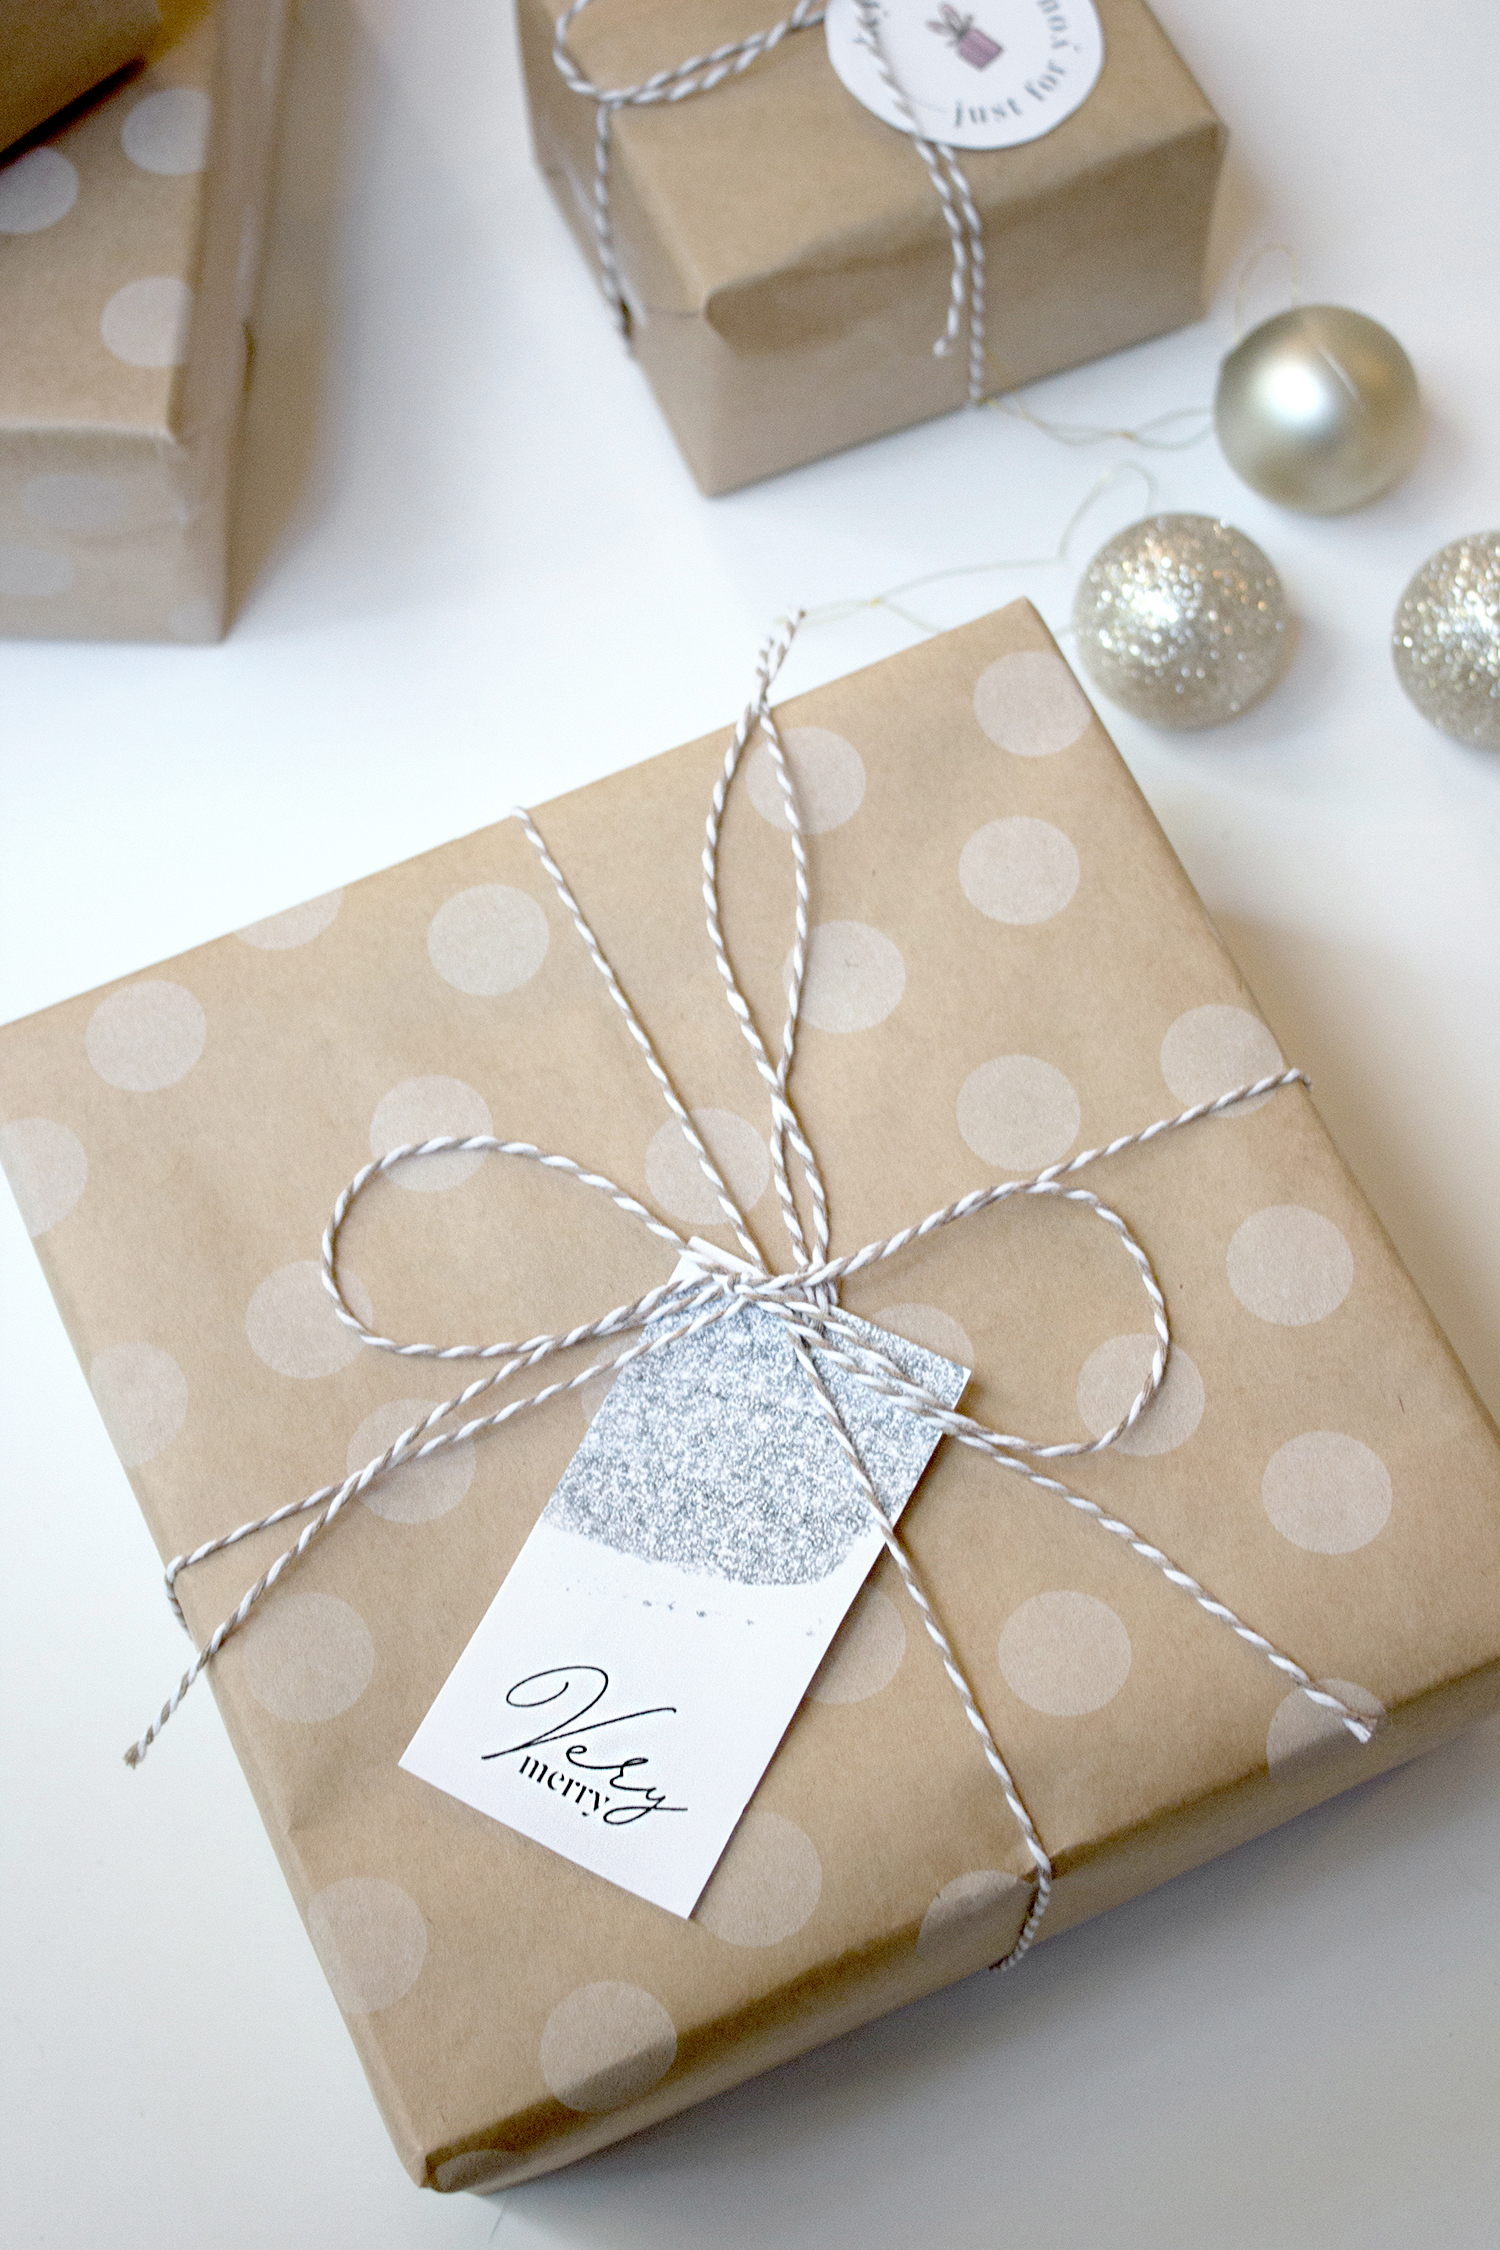 glitter sparkly gift tags for christmas presents   reux design co.